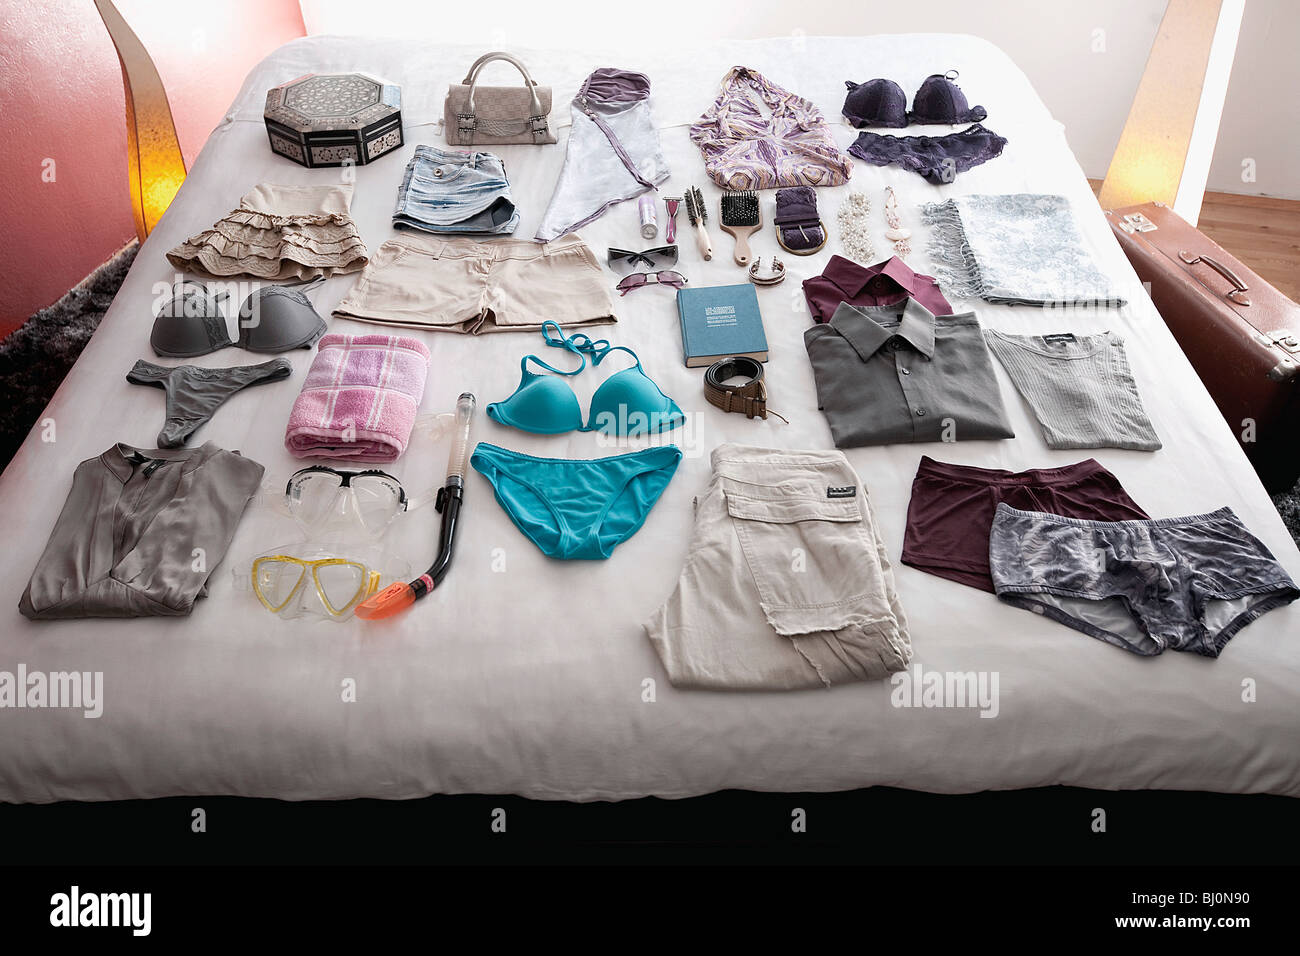 clothes for travel laid out on bed - Stock Image